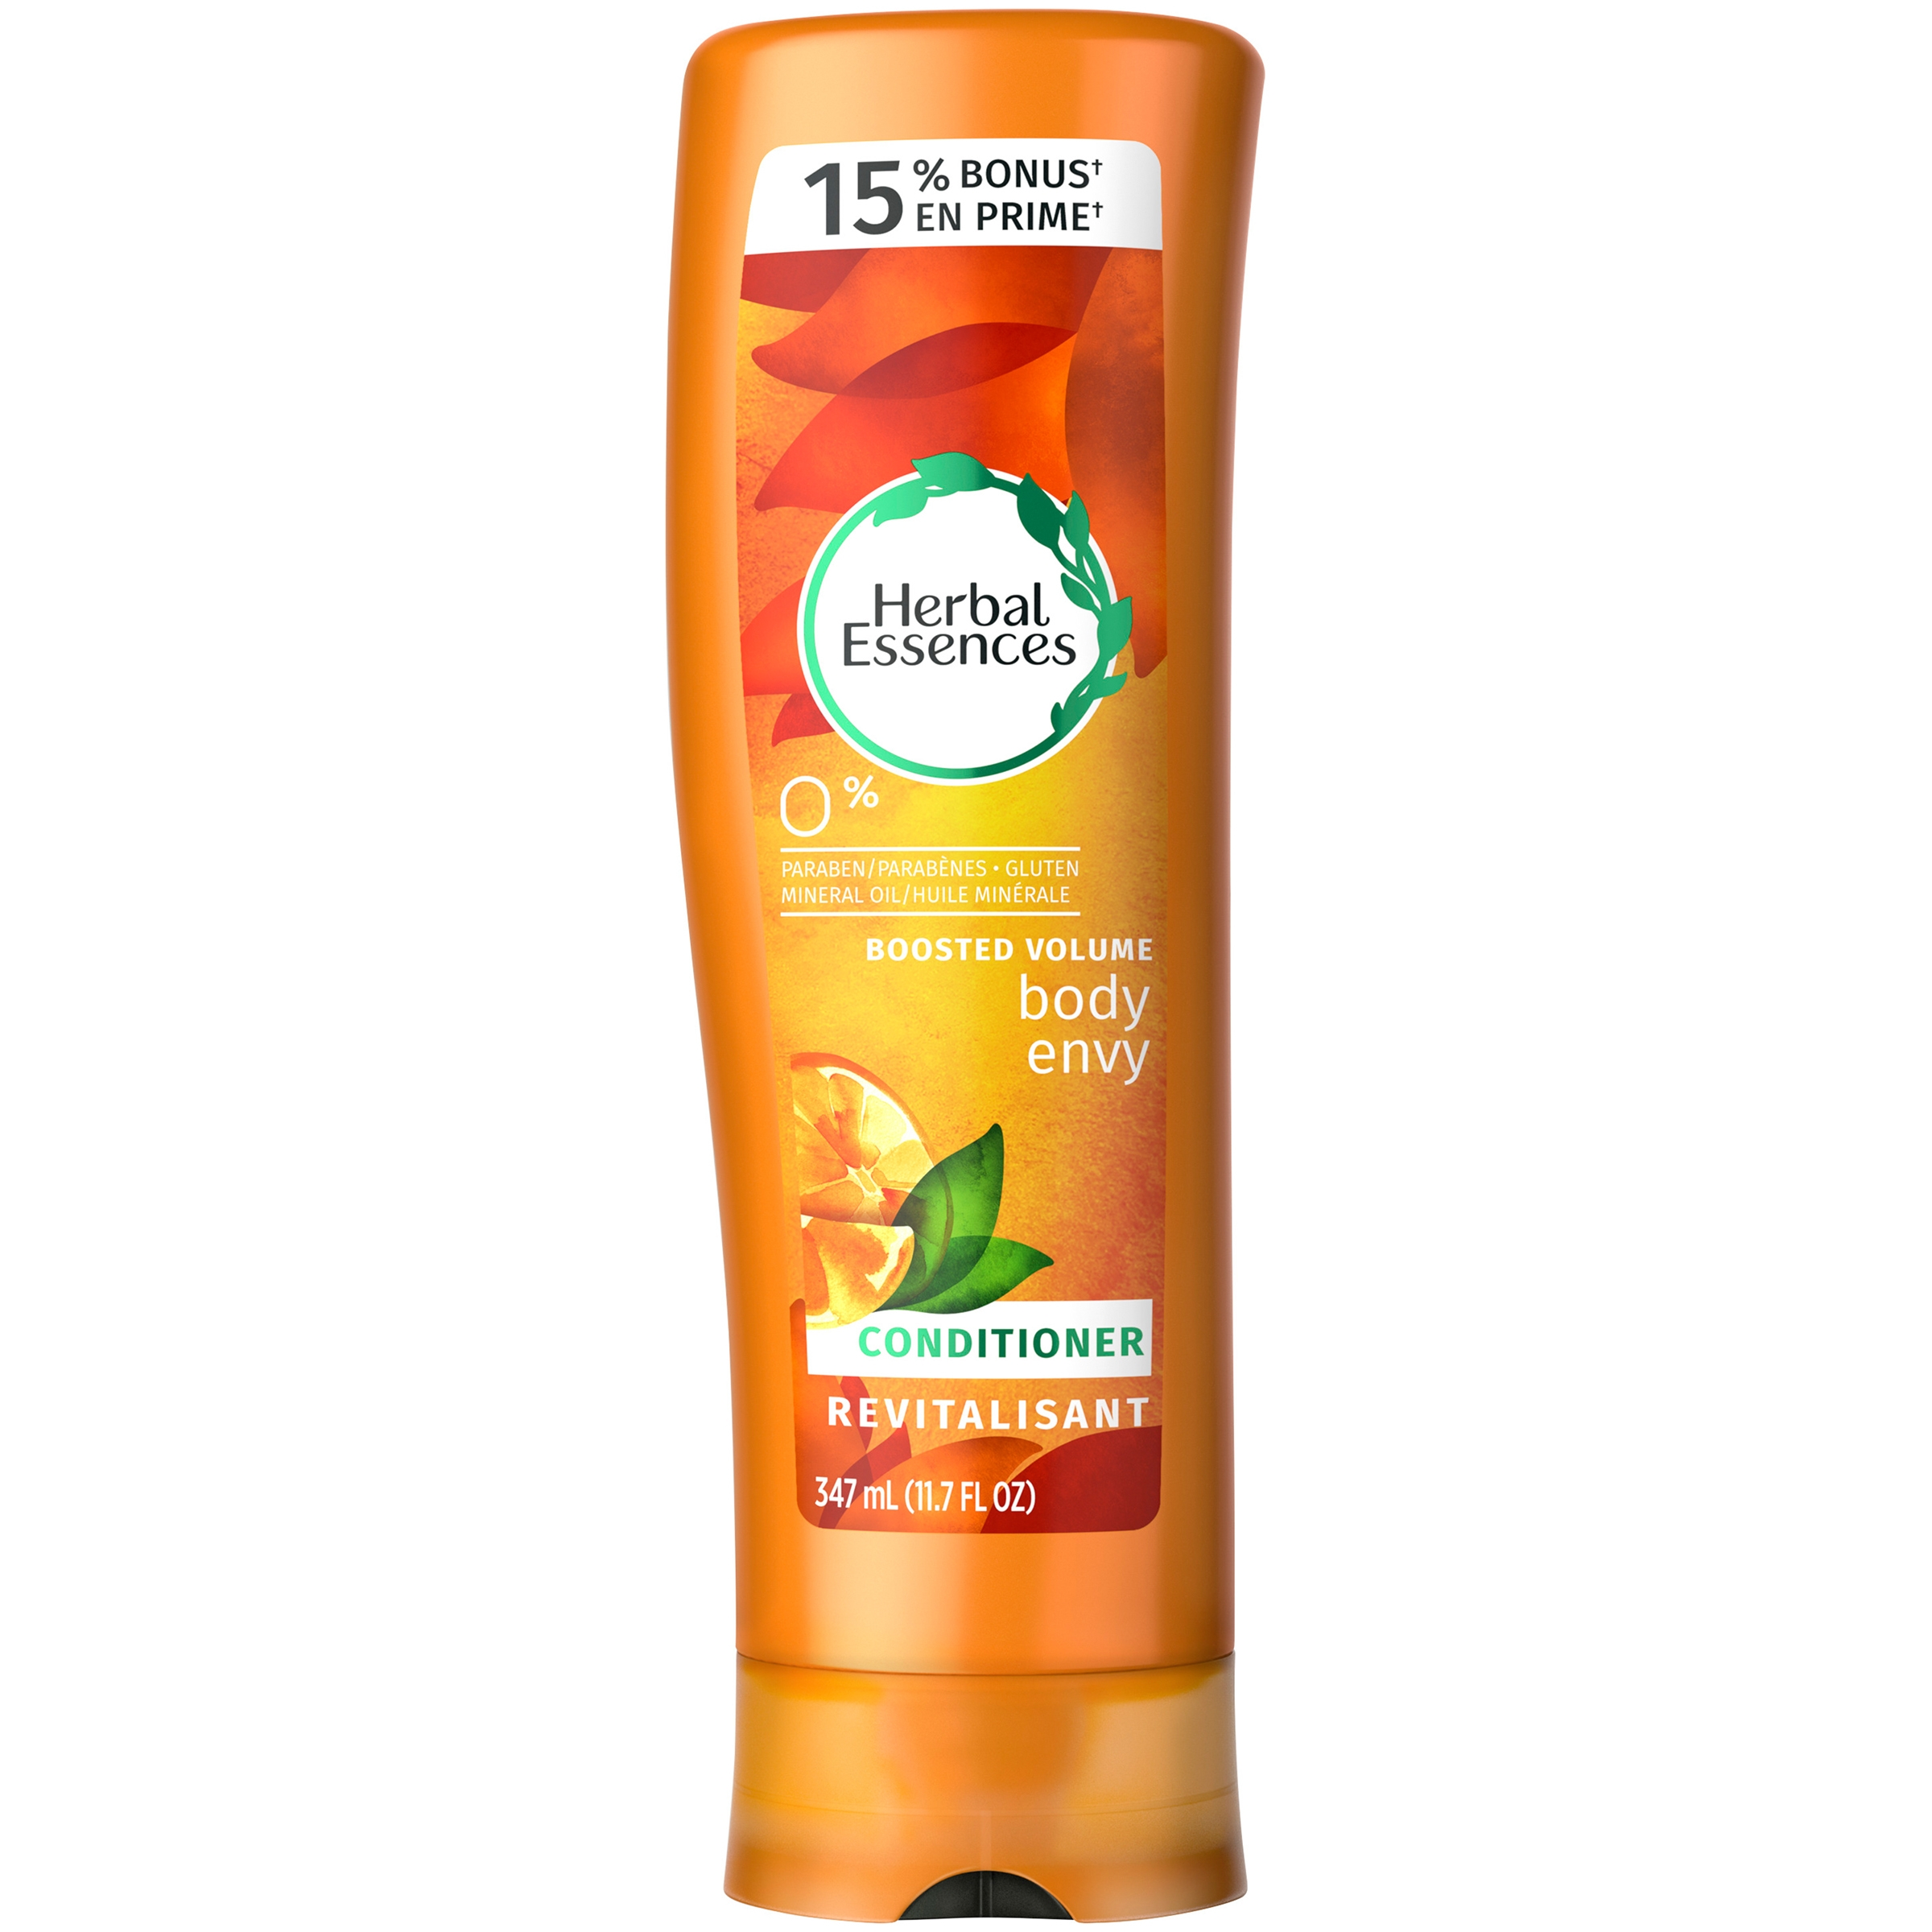 Herbal Essences Body Envy Boosted Volume Conditioner 11.7 fl. oz